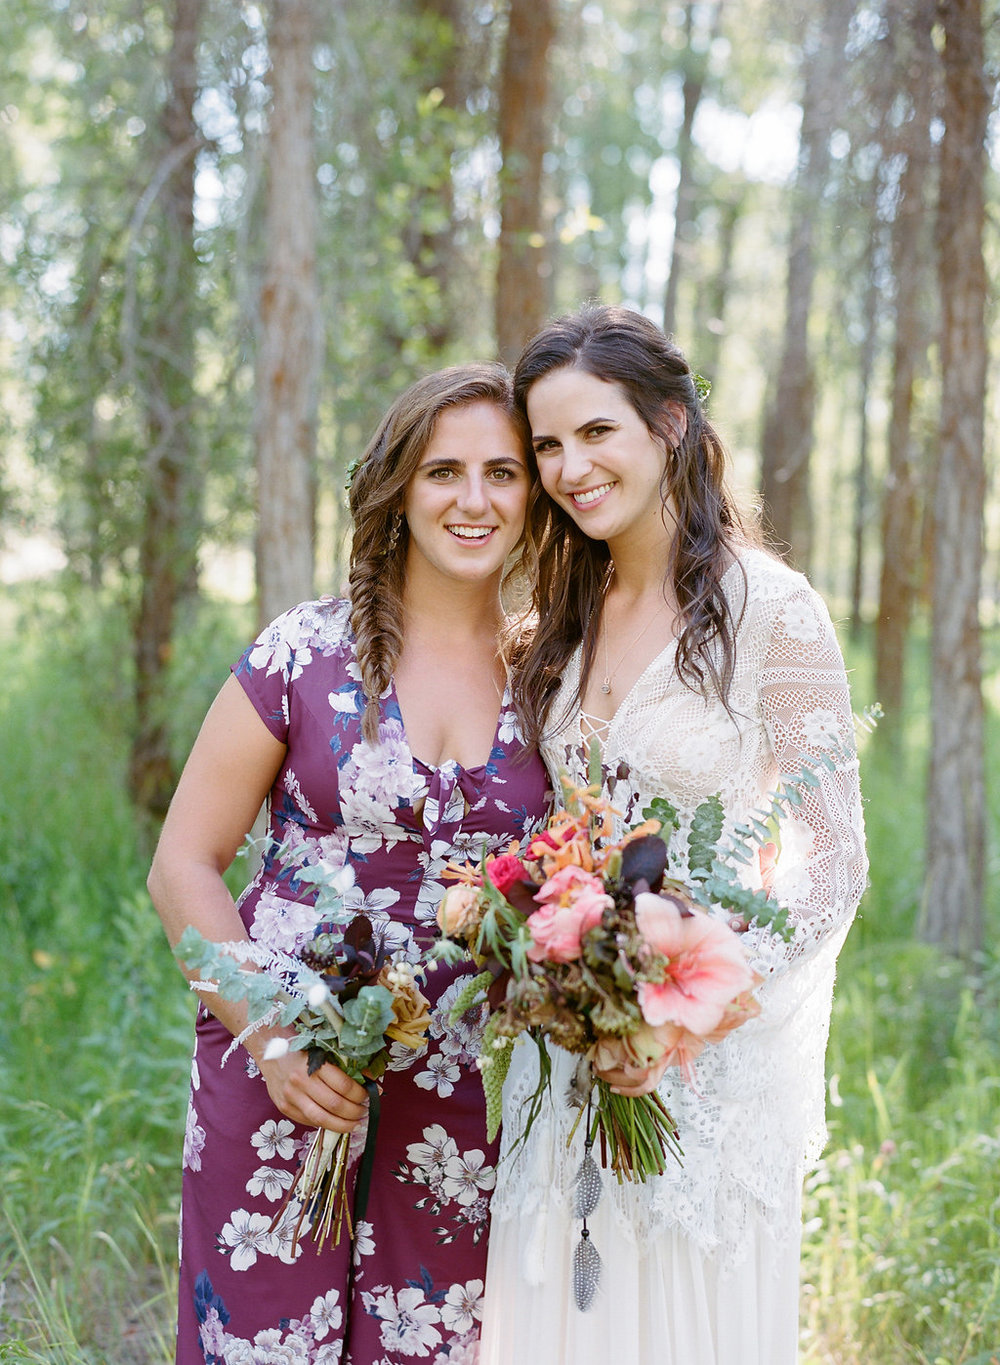 Jackson Hole wedding planner